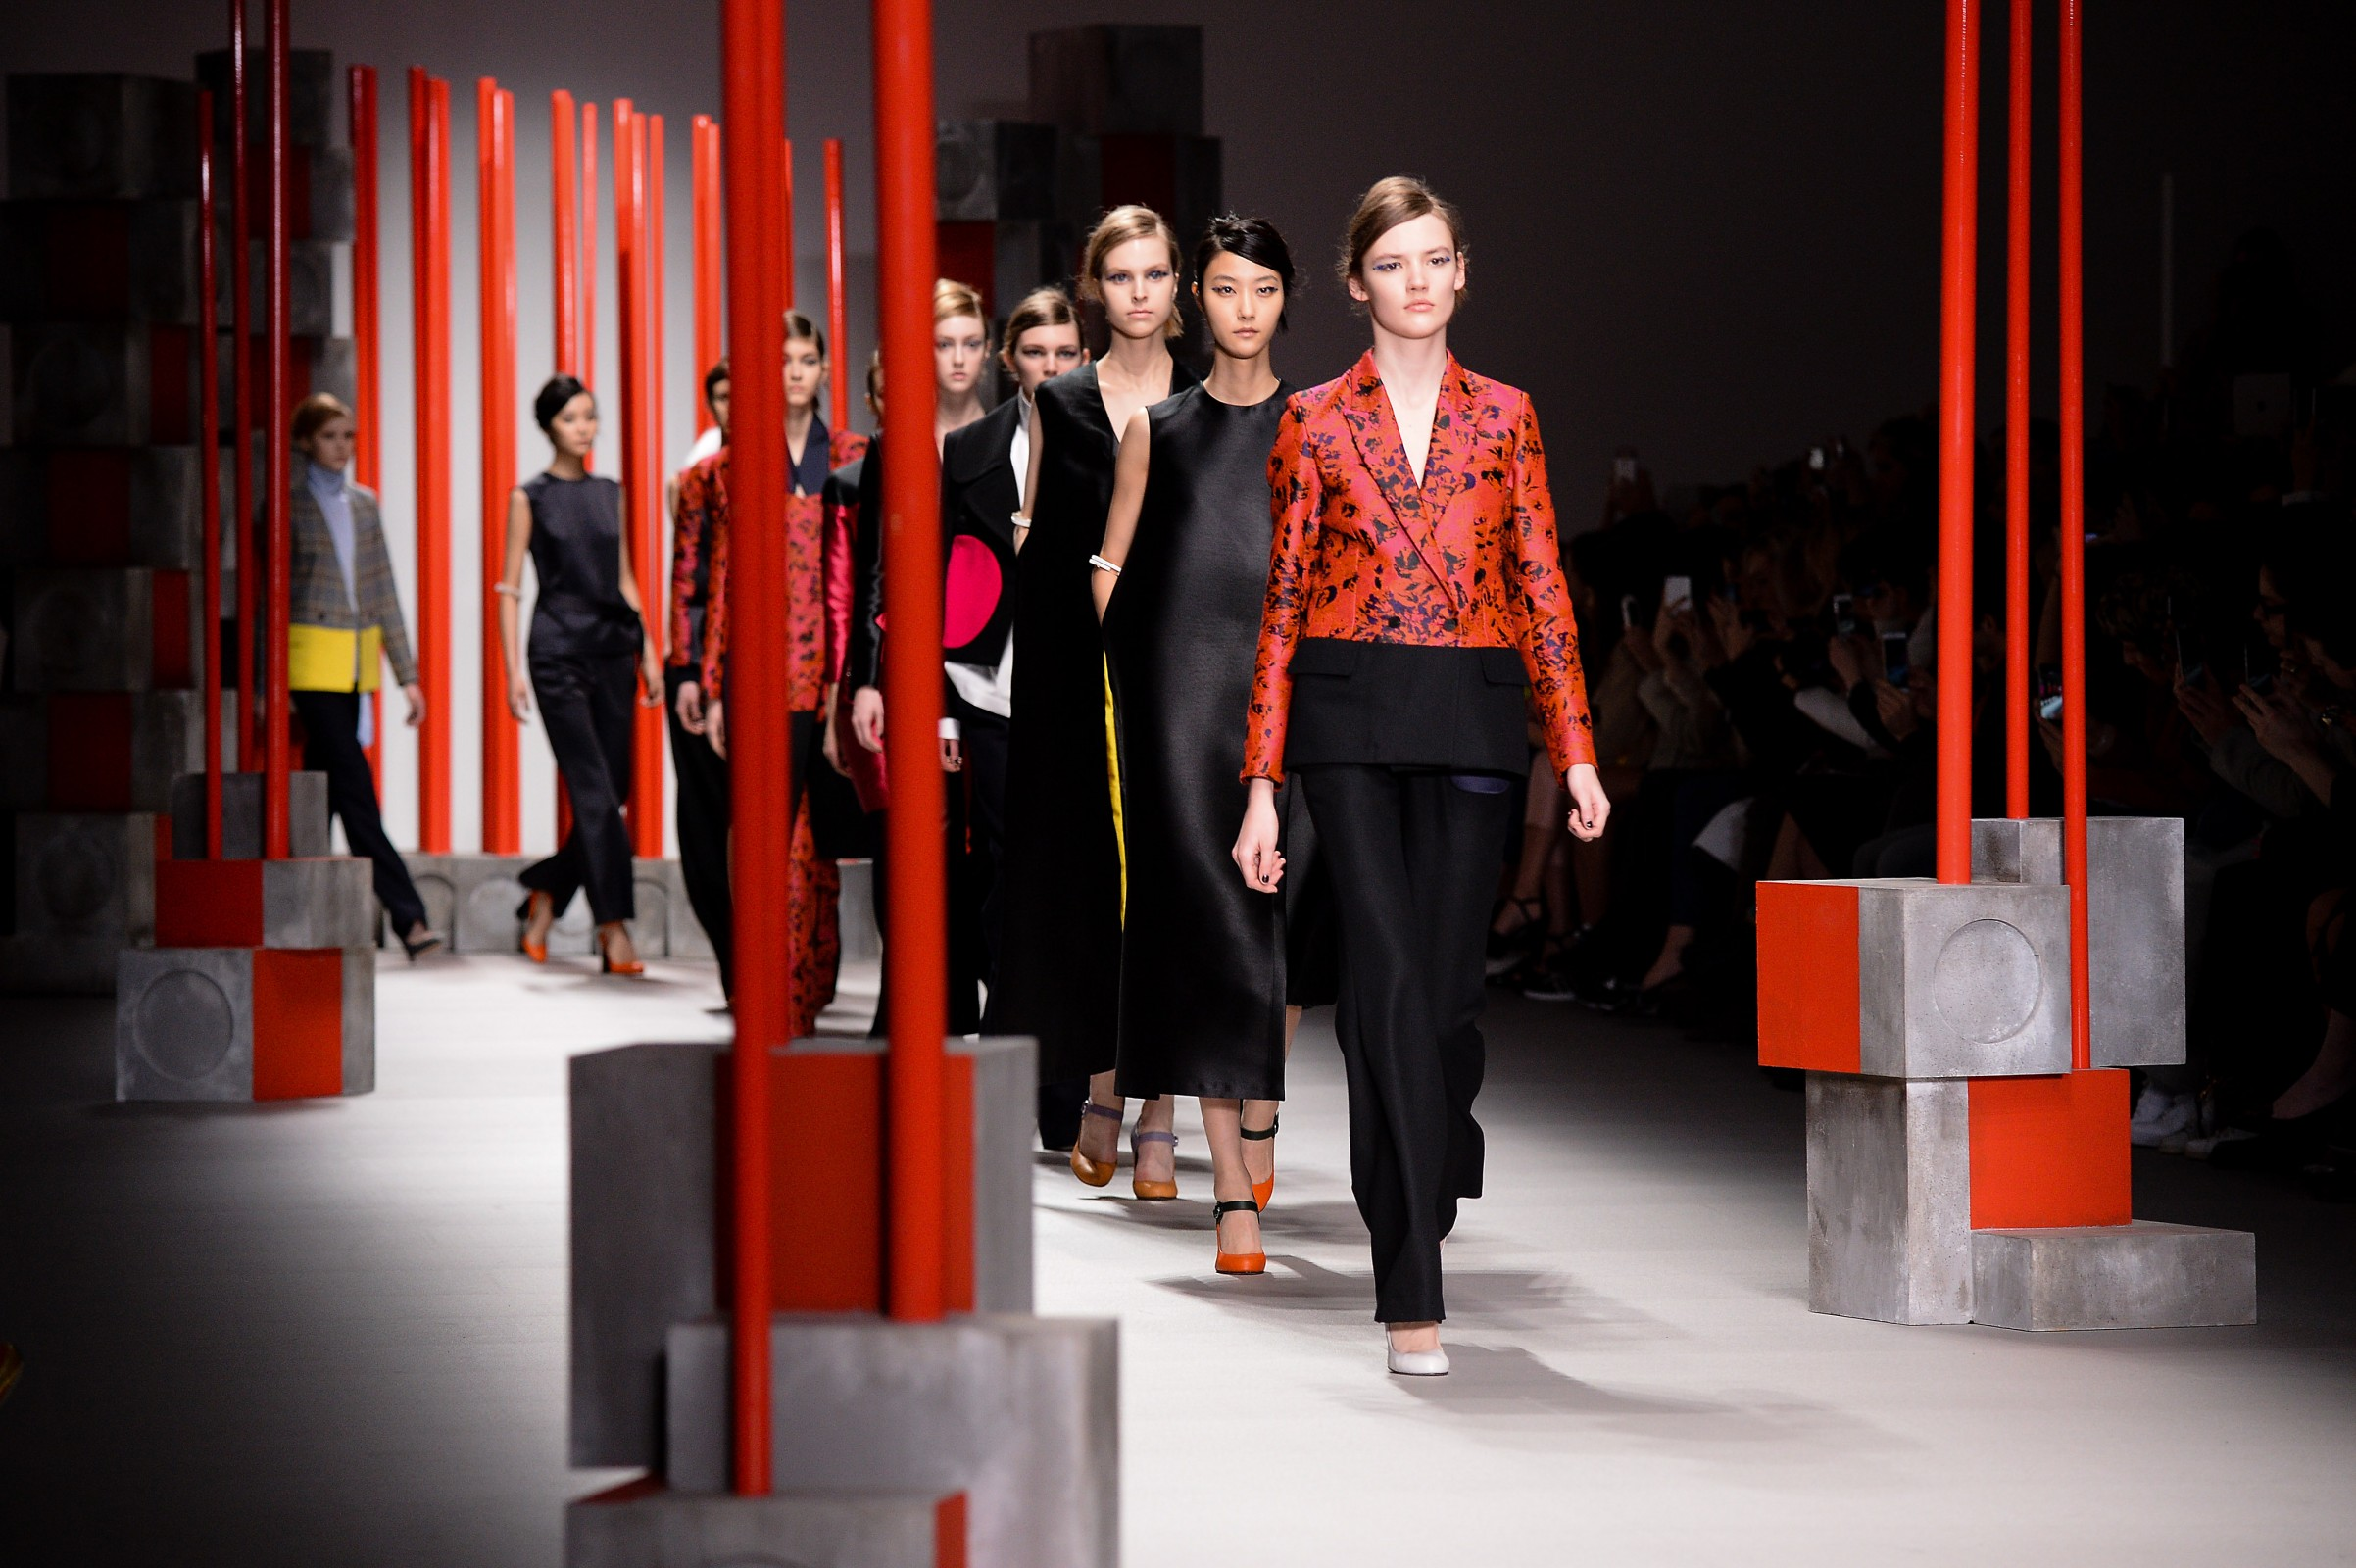 LFW: The Red Revolution